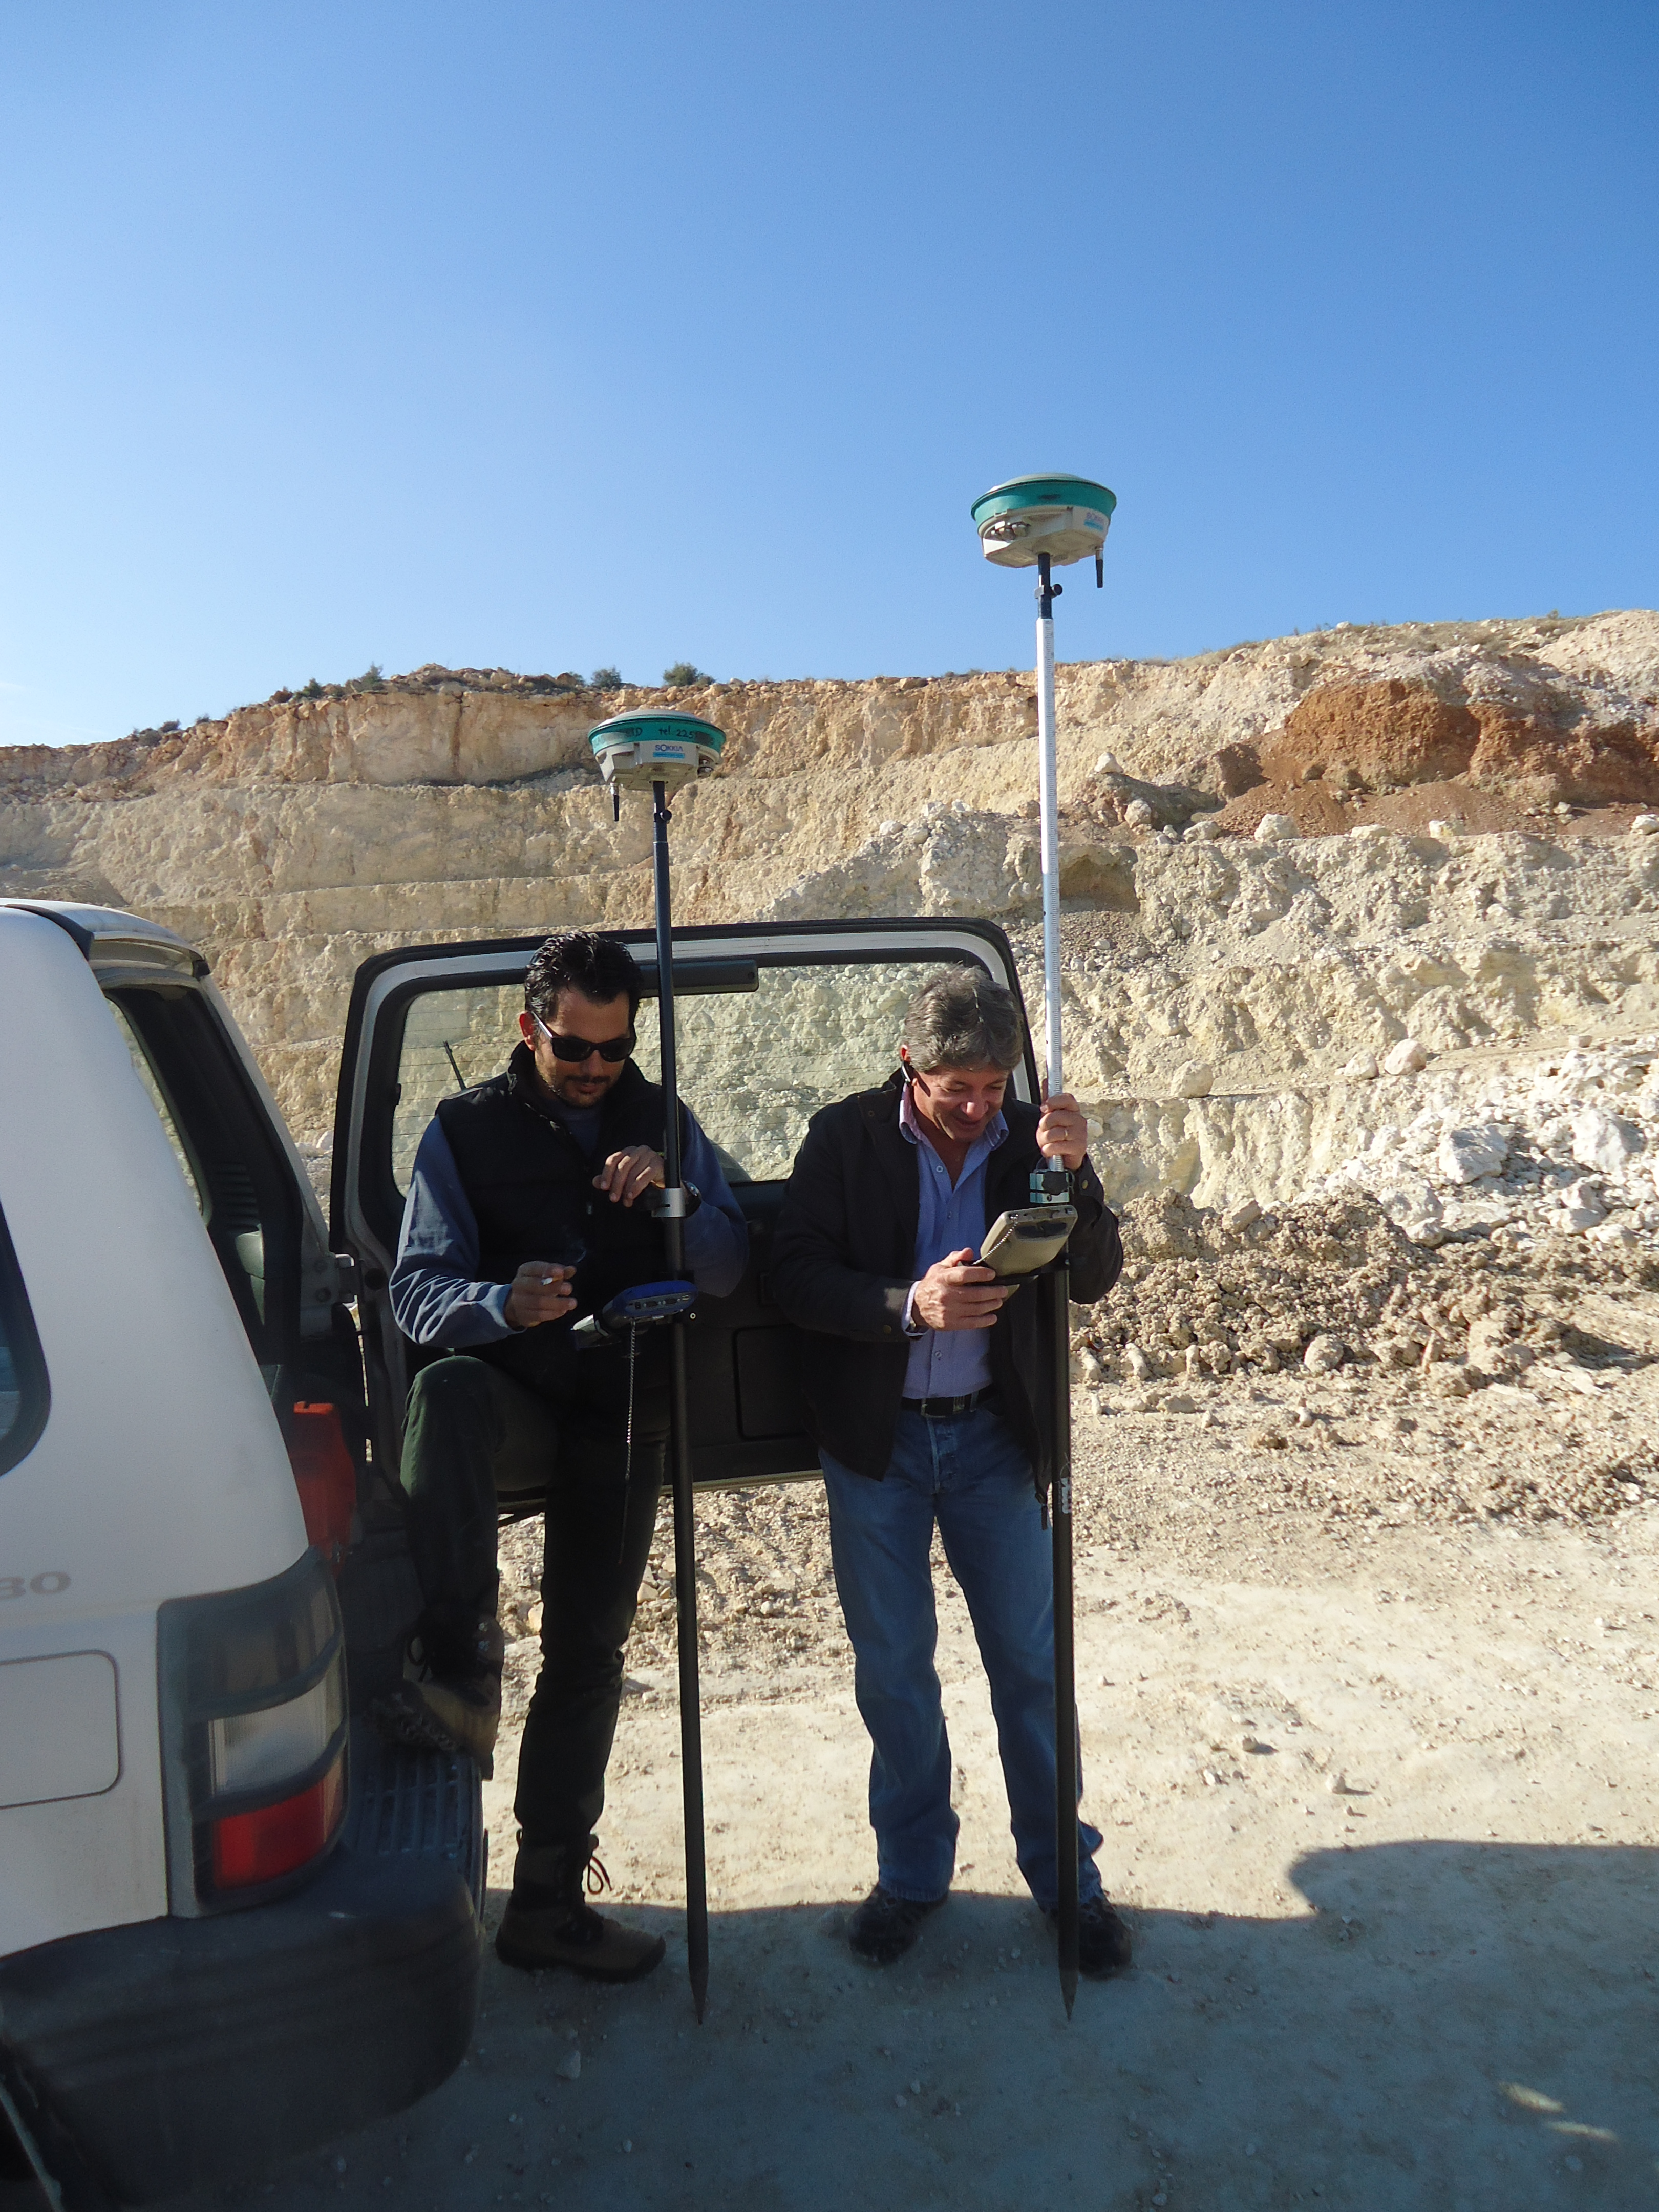 Surveying work with two Surveyors